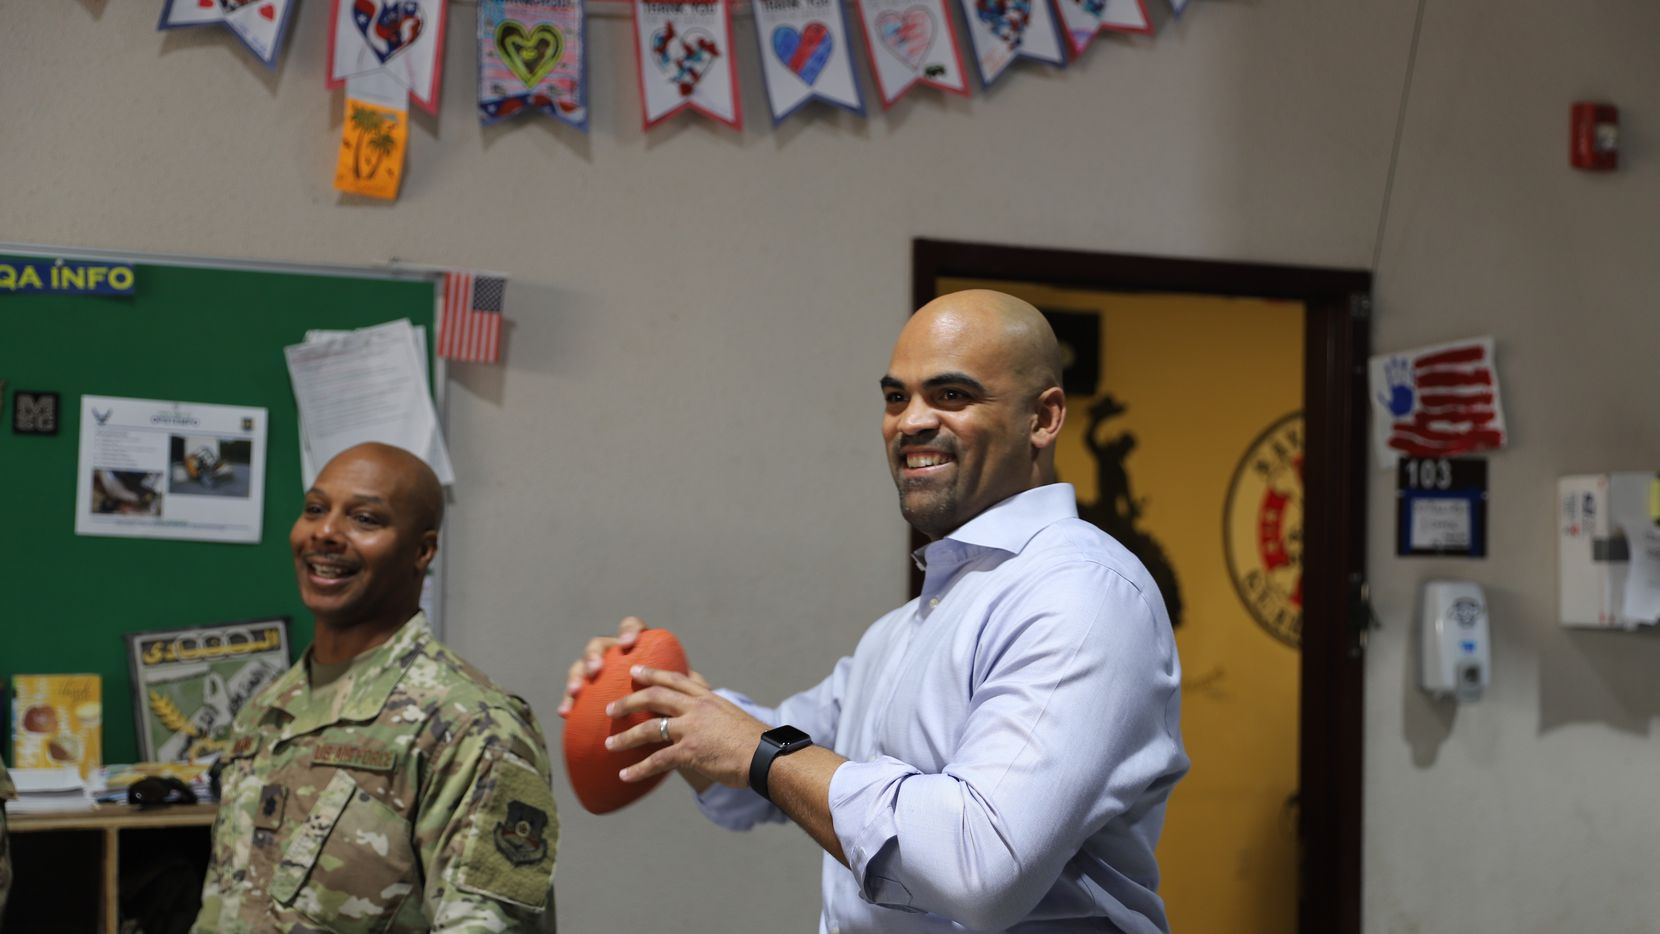 Rep. Colin Allred, D-Dallas, throws a football at Camp Arifjan in Kuwait. Allred visited the base as part of a week-long trip to visit soldiers in Kuwait and Afghanistan from Nov. 25 to Dec. 1.